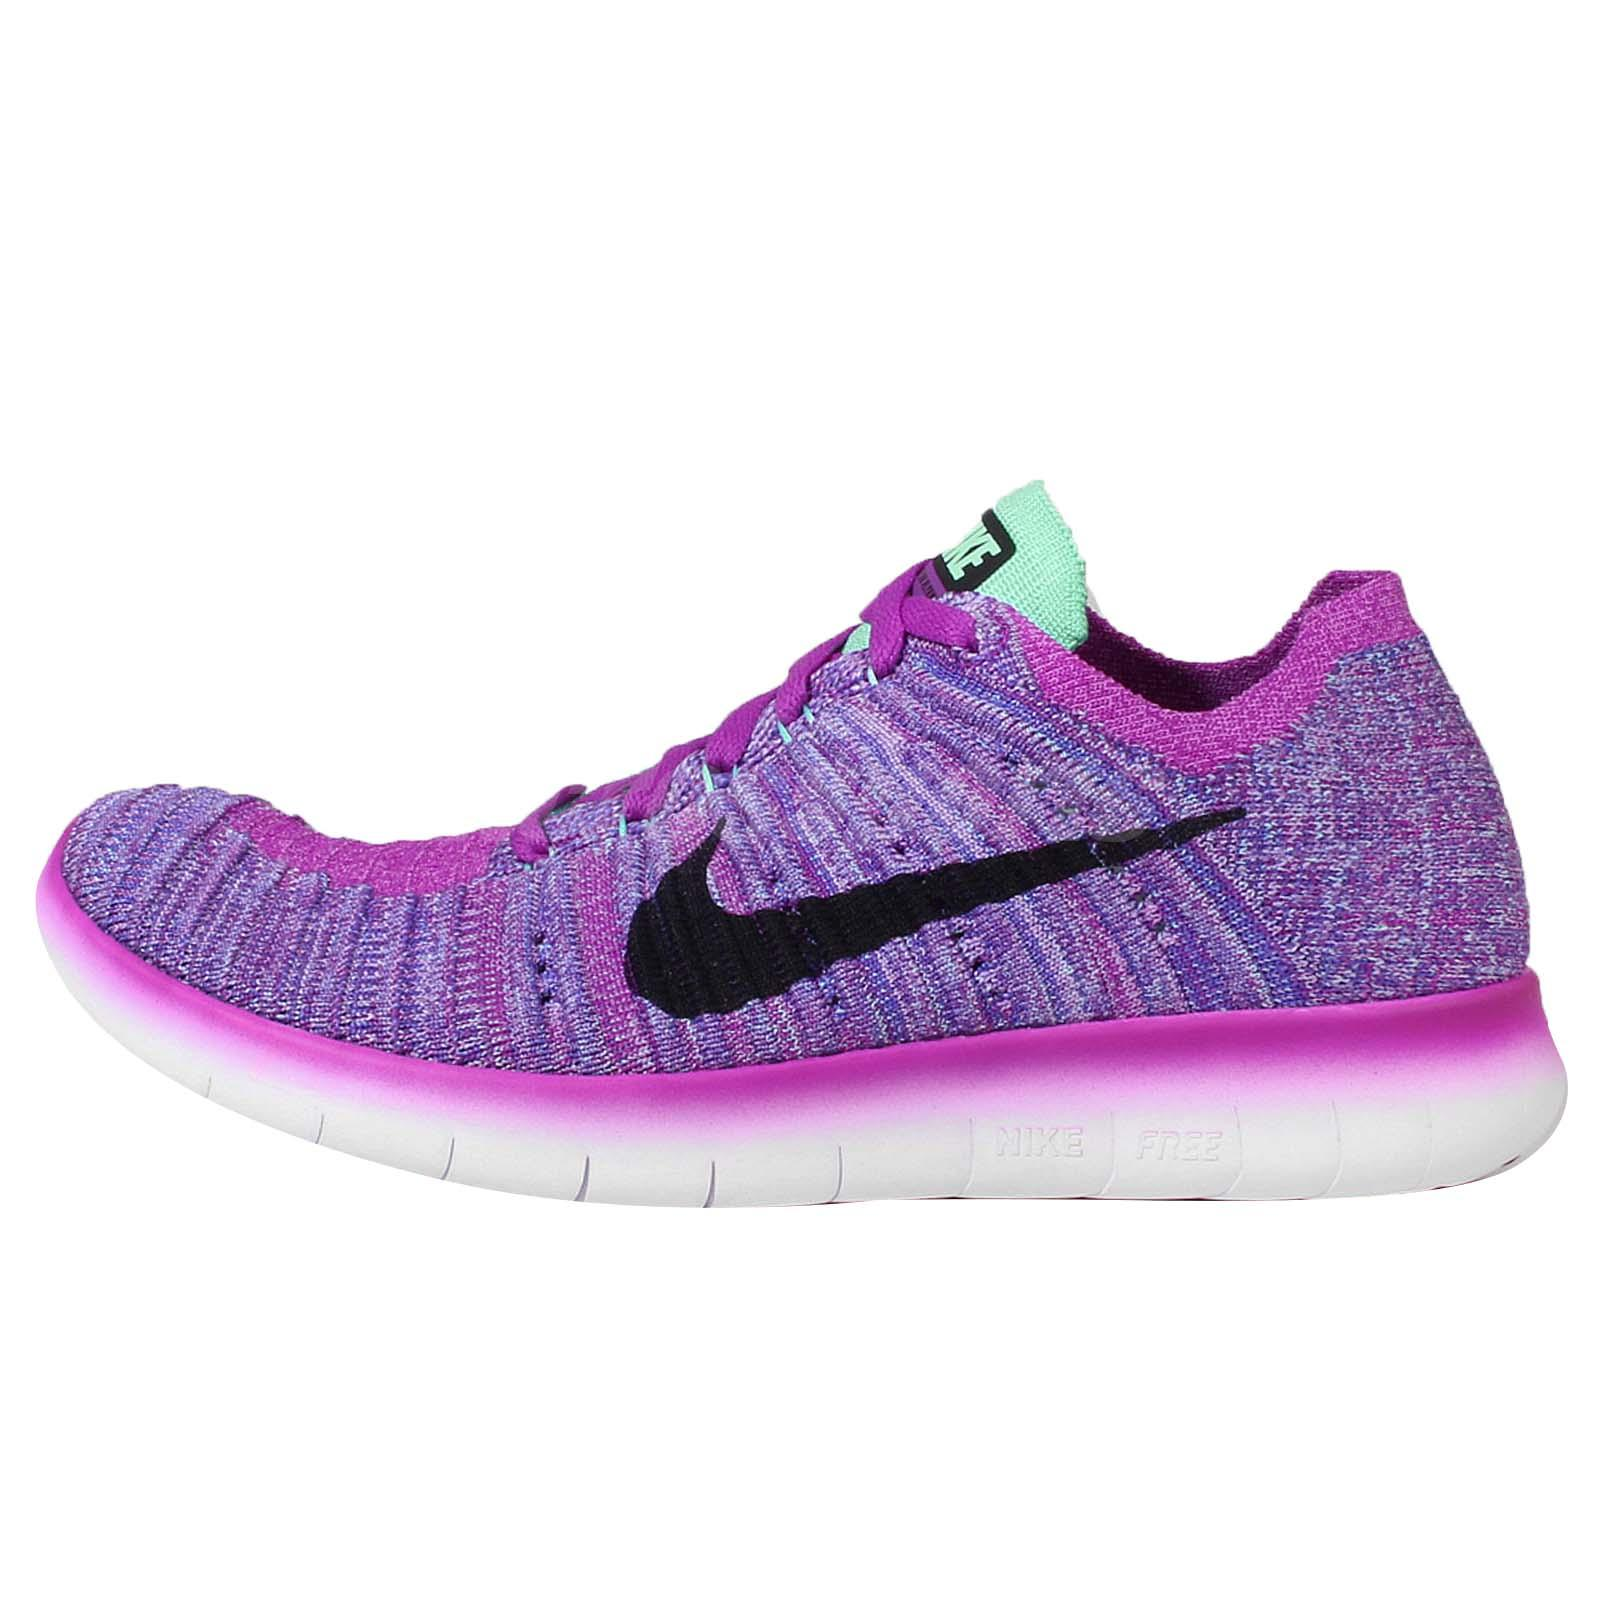 e0d1cd559bd04 Nike Free RN Flyknit GS Run Purple Black Kids Womens Running Shoes  834363-500